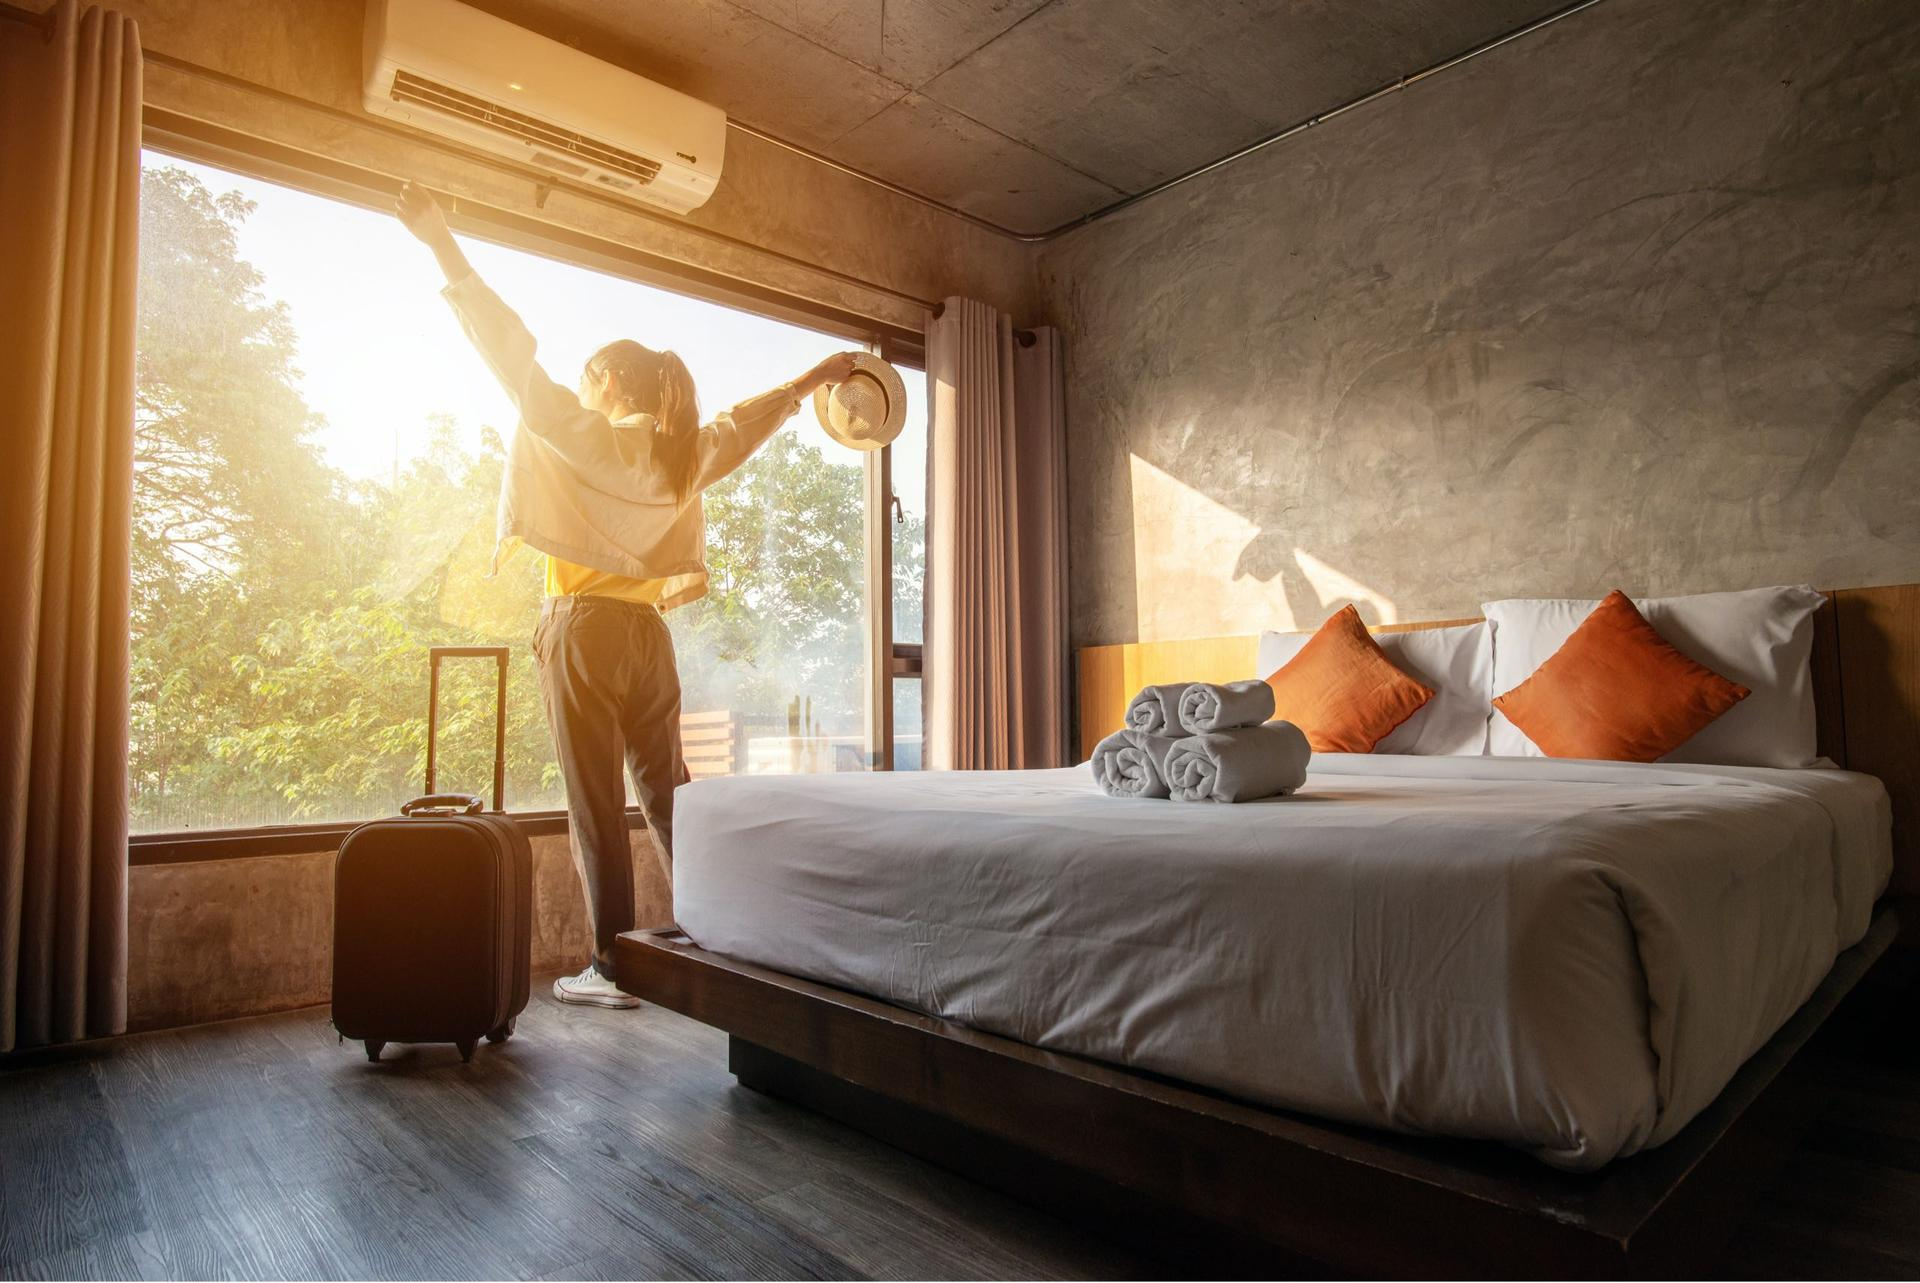 Staycation: No Planning Required